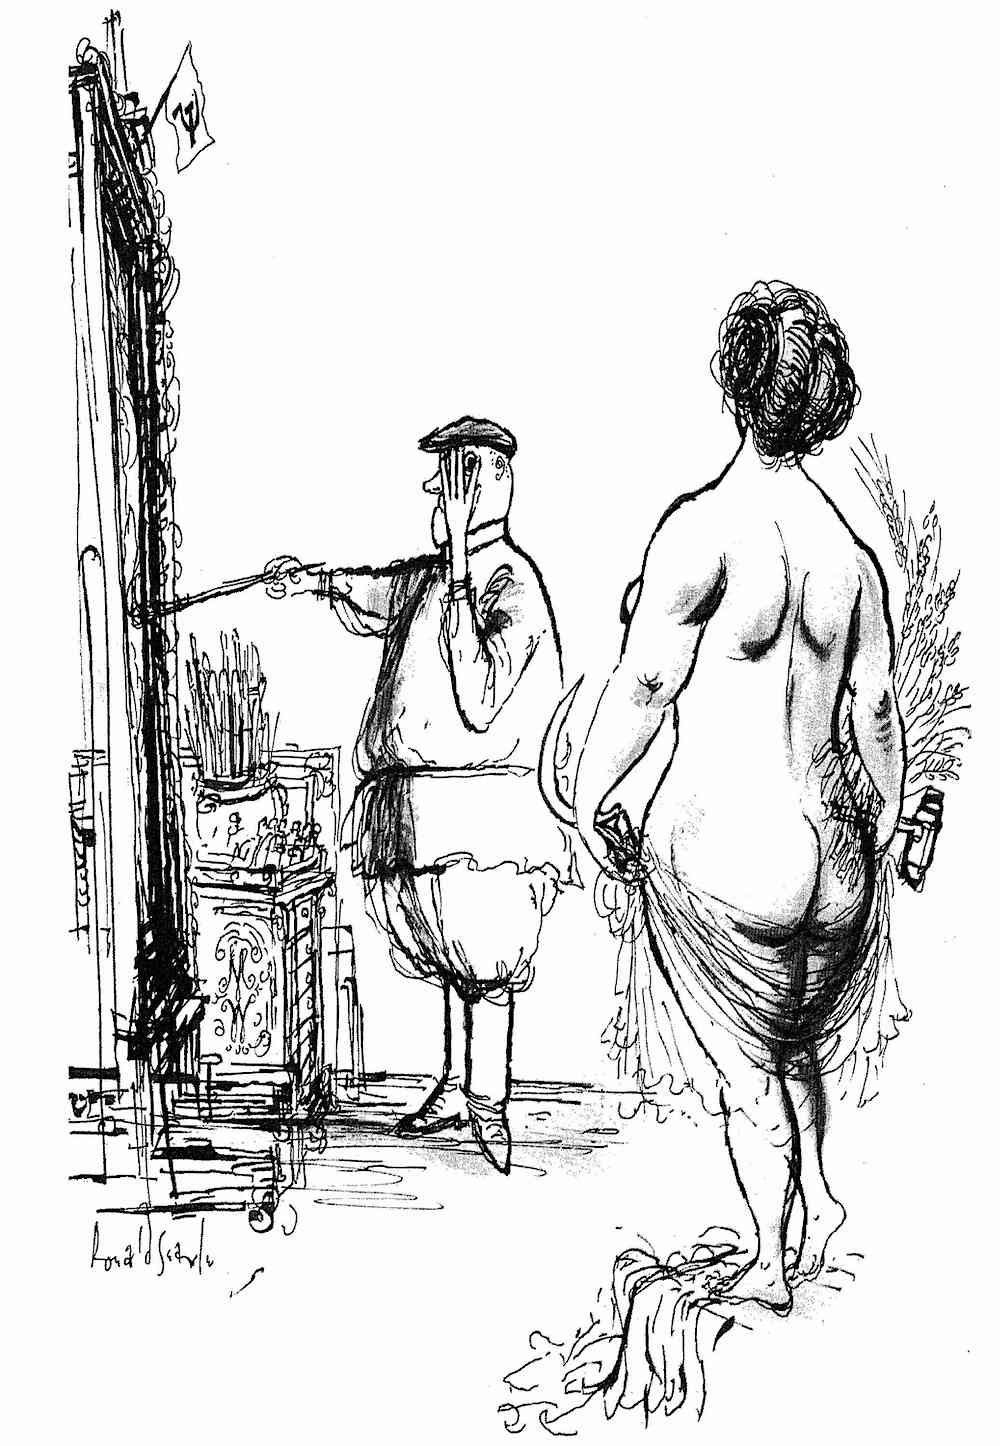 a shy Soviet painter and his nude model by Ronald Searle